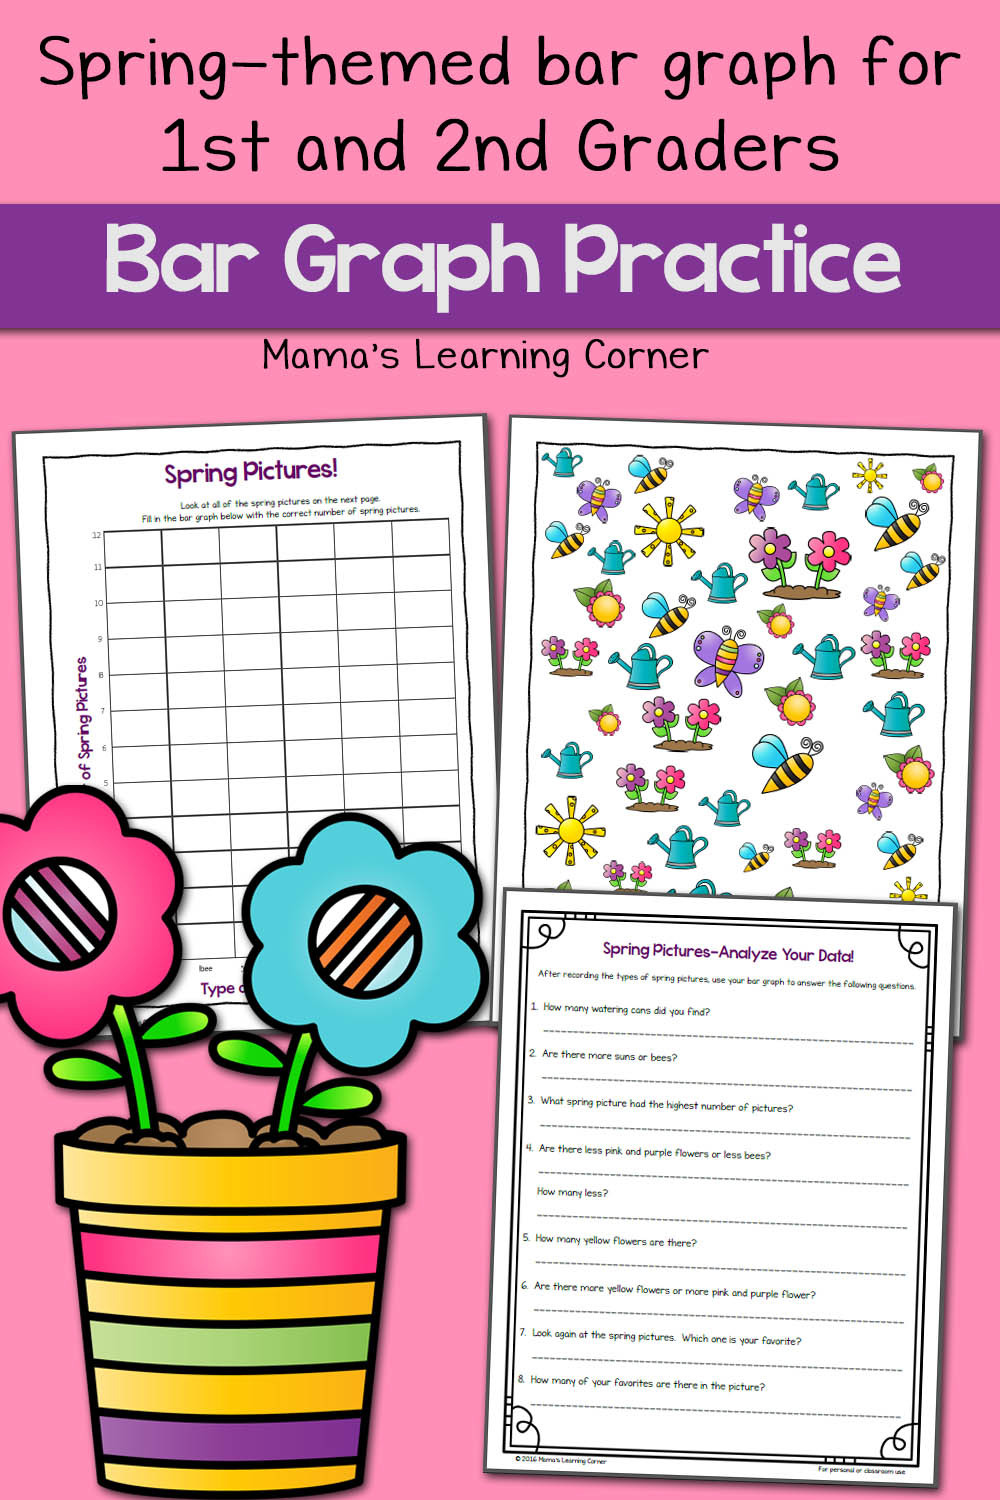 Bar Graph Worksheets 4th Grade Spring Picture Bar Graph Worksheets Mamas Learning Corner